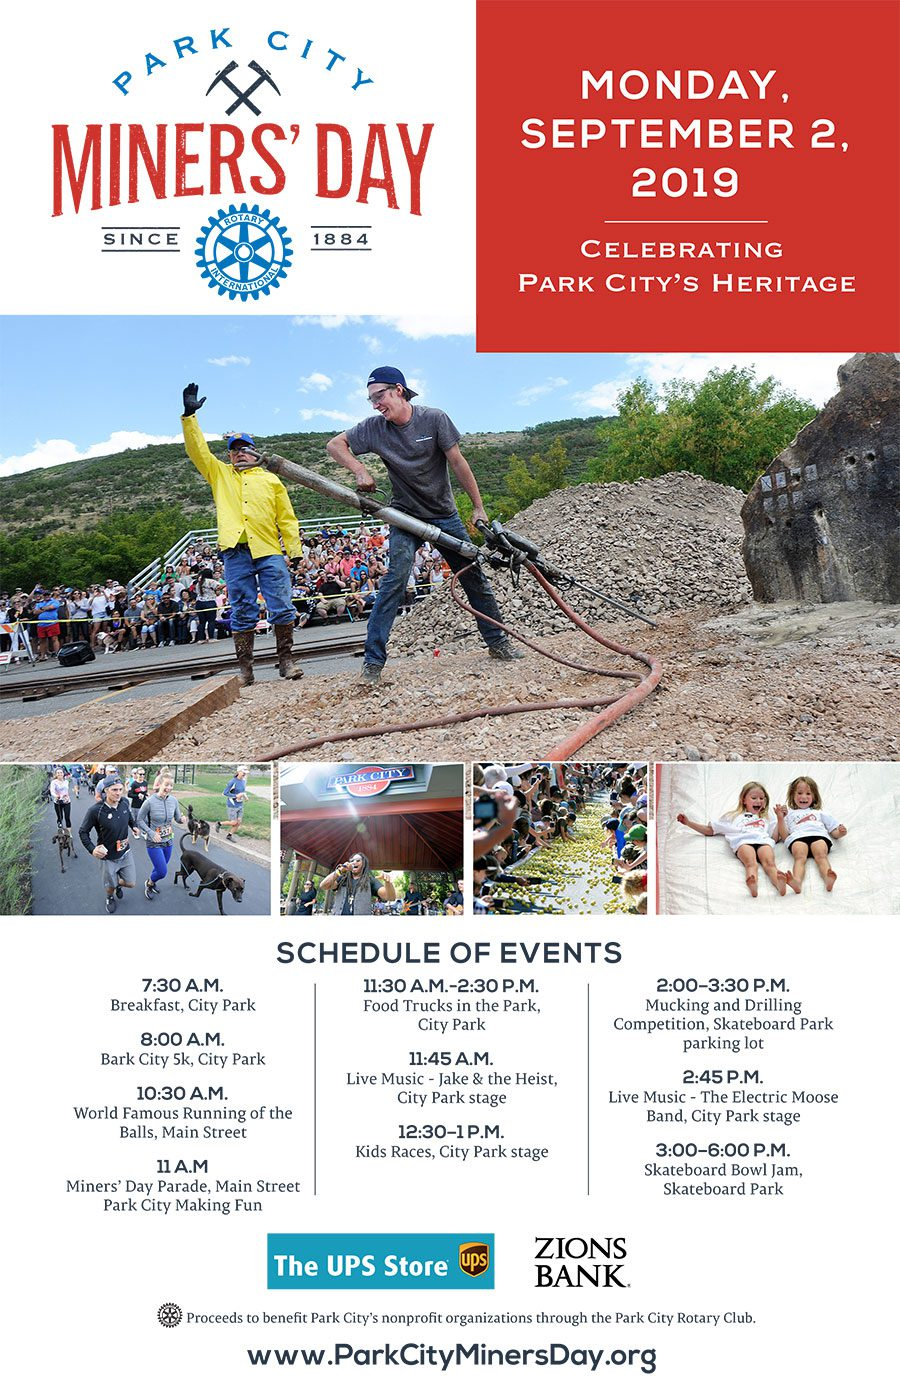 Making FUN in Park City is the theme of the annual Miners' Day parade down historic Main Street, attracting marching bands and community floats as Park City celebrates its mining heritage.  Put your blanket down on the curb with the kids and be ready for the fun. The parade is scheduled for 11:00 a.m., just after the annual Running of the Balls down Main Street. The parade route runs the length of Main Street, before skipping over to Park Avenue and on down to City Park.